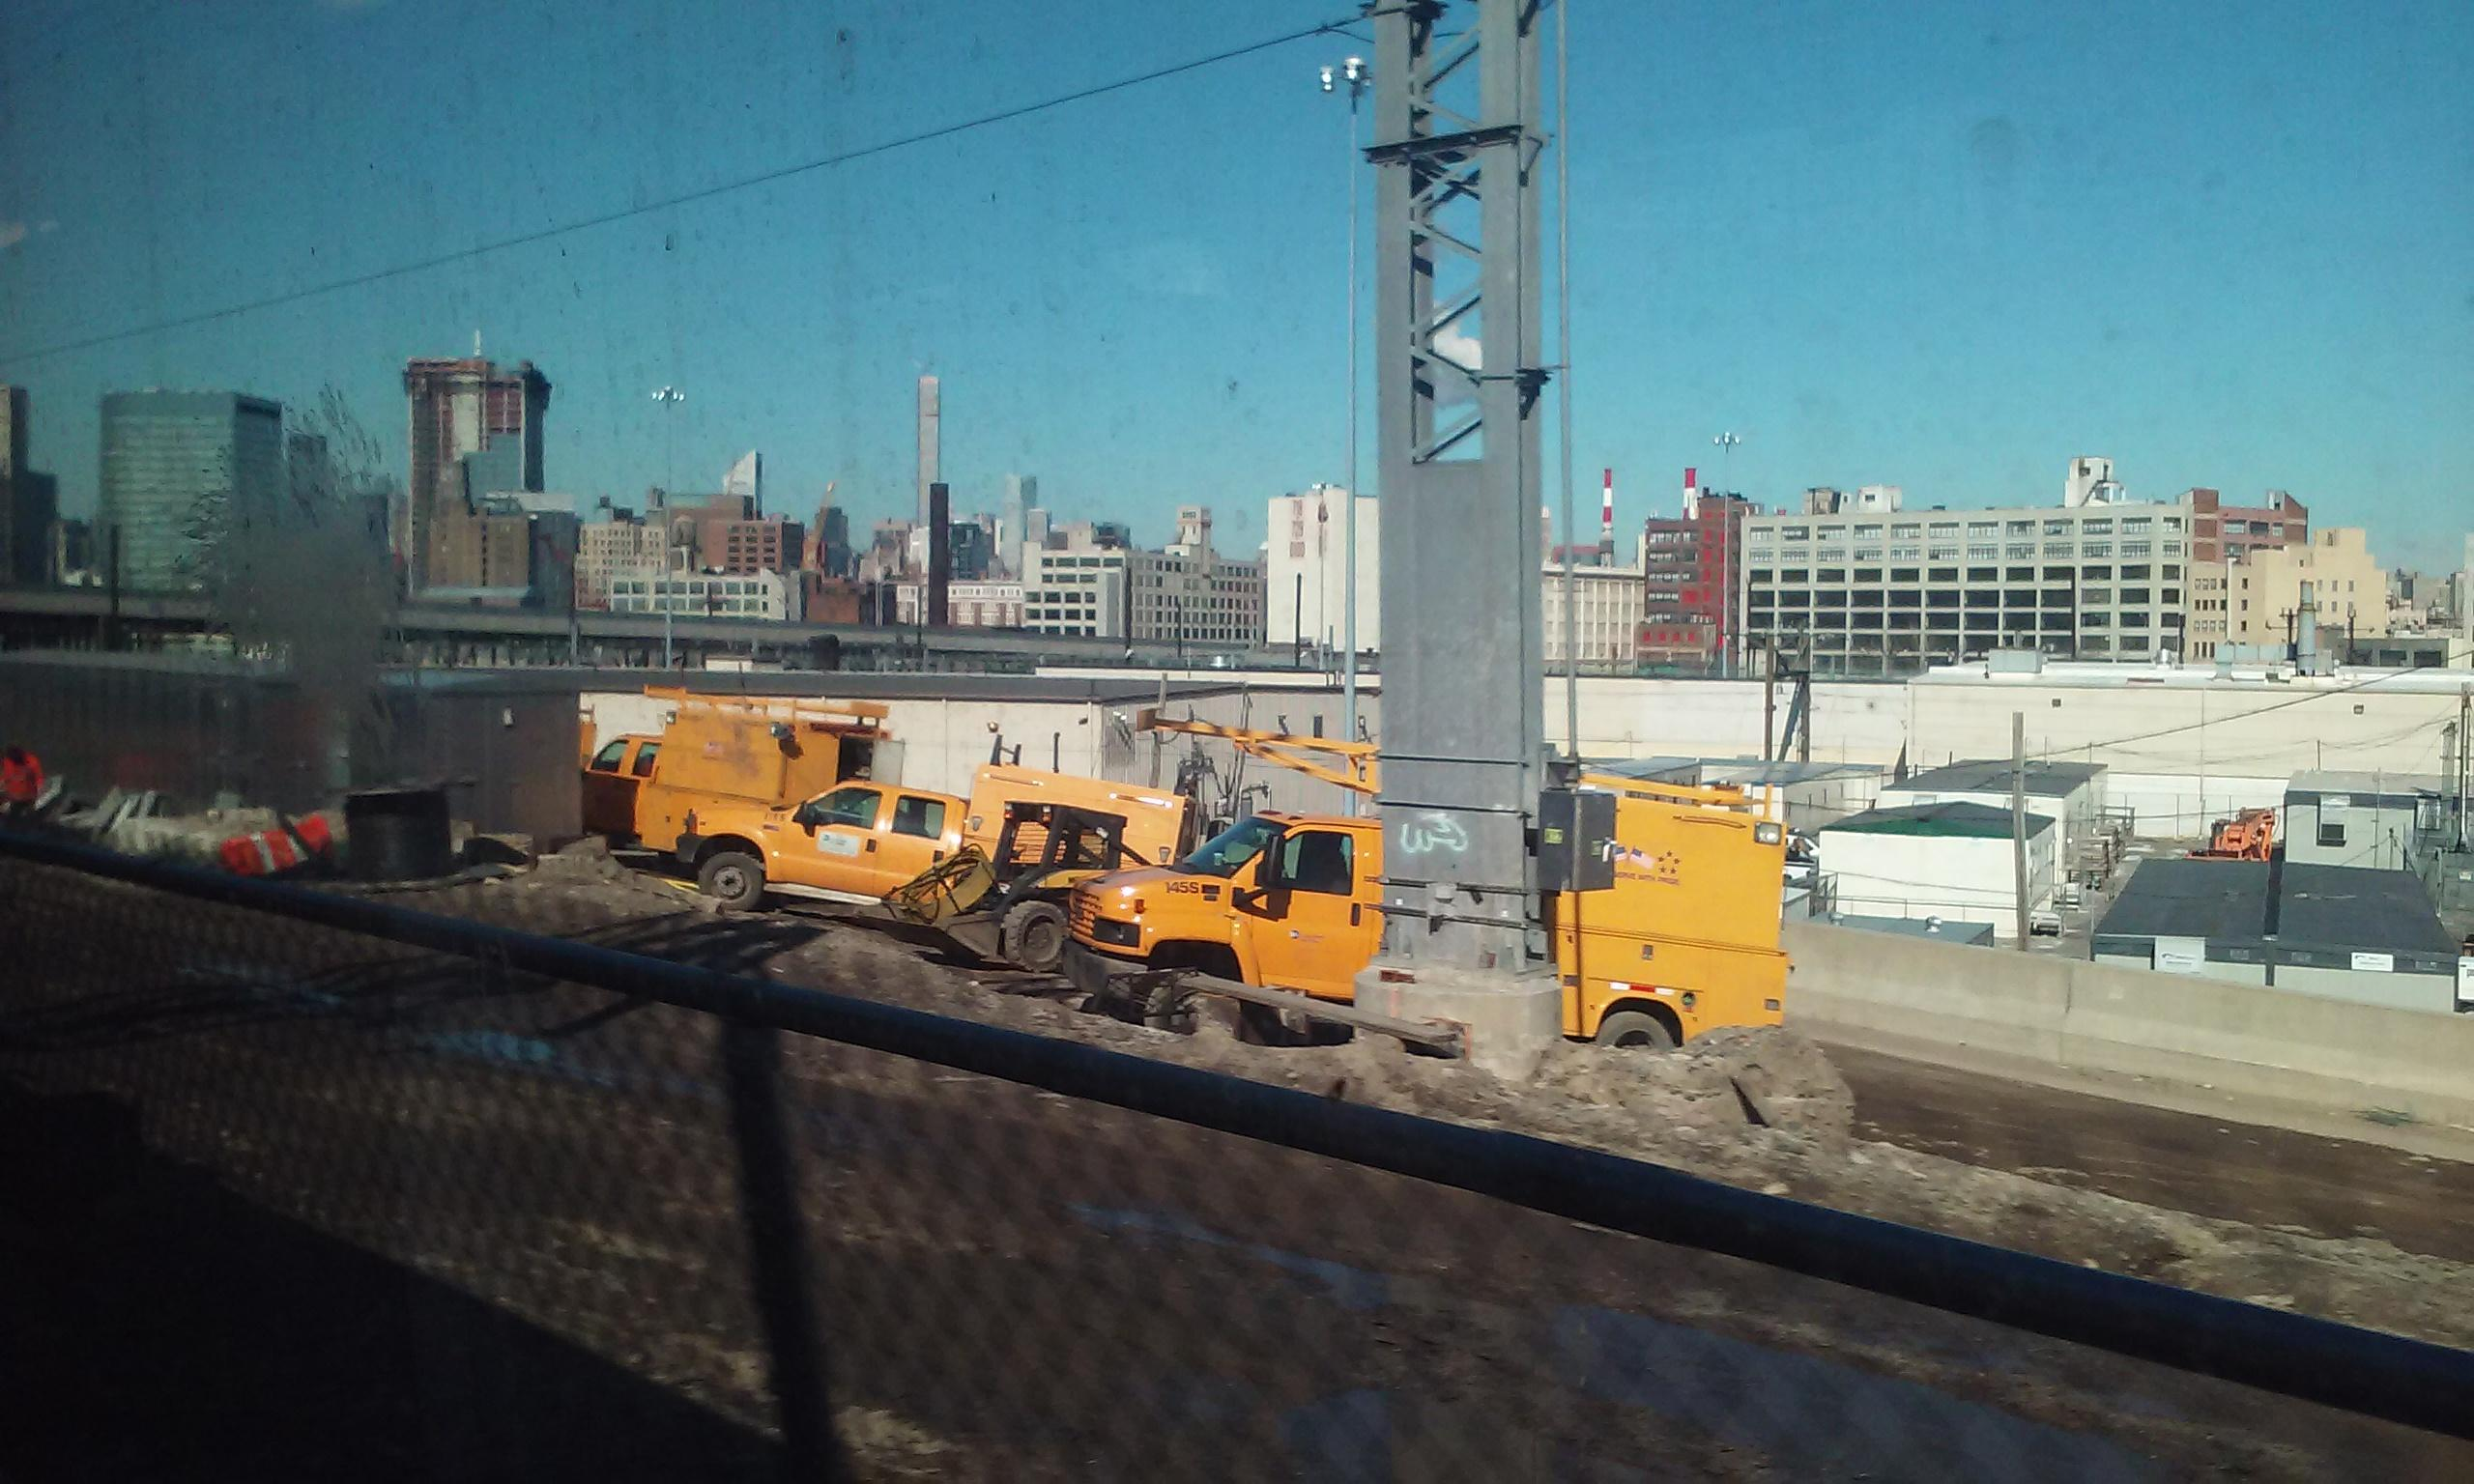 New York Skyline from the rail road.